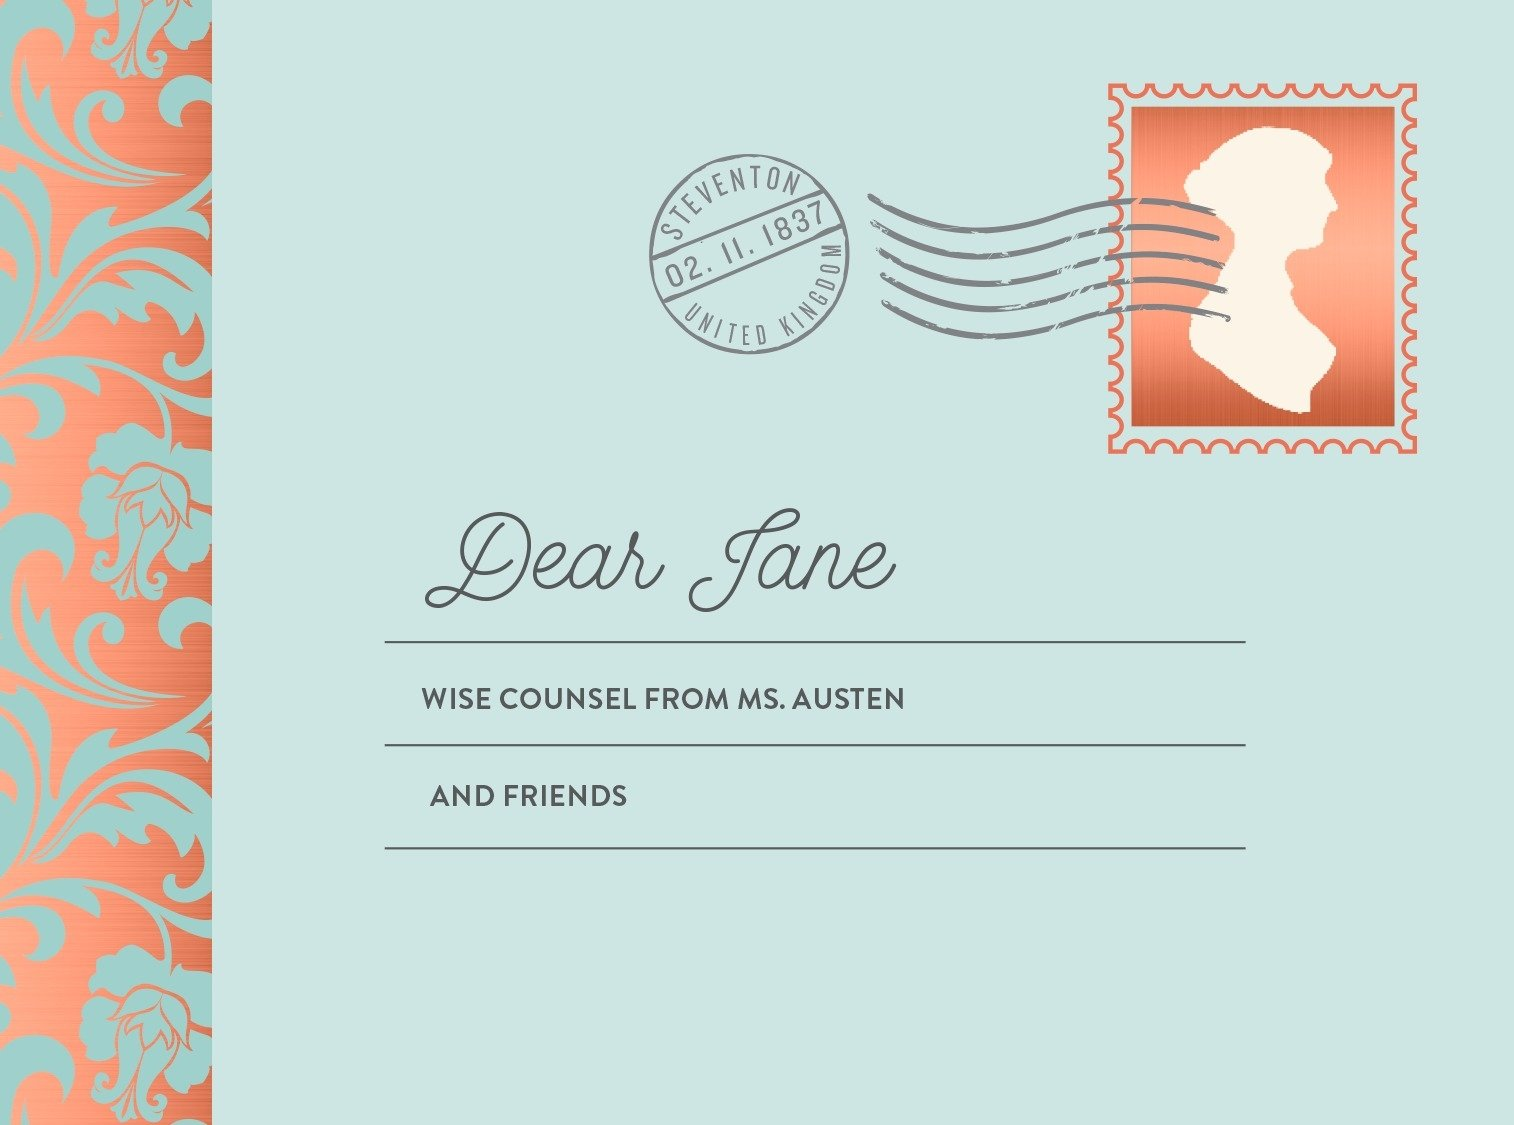 Dear Jane: Wise Counsel from Ms. Austen and Friends